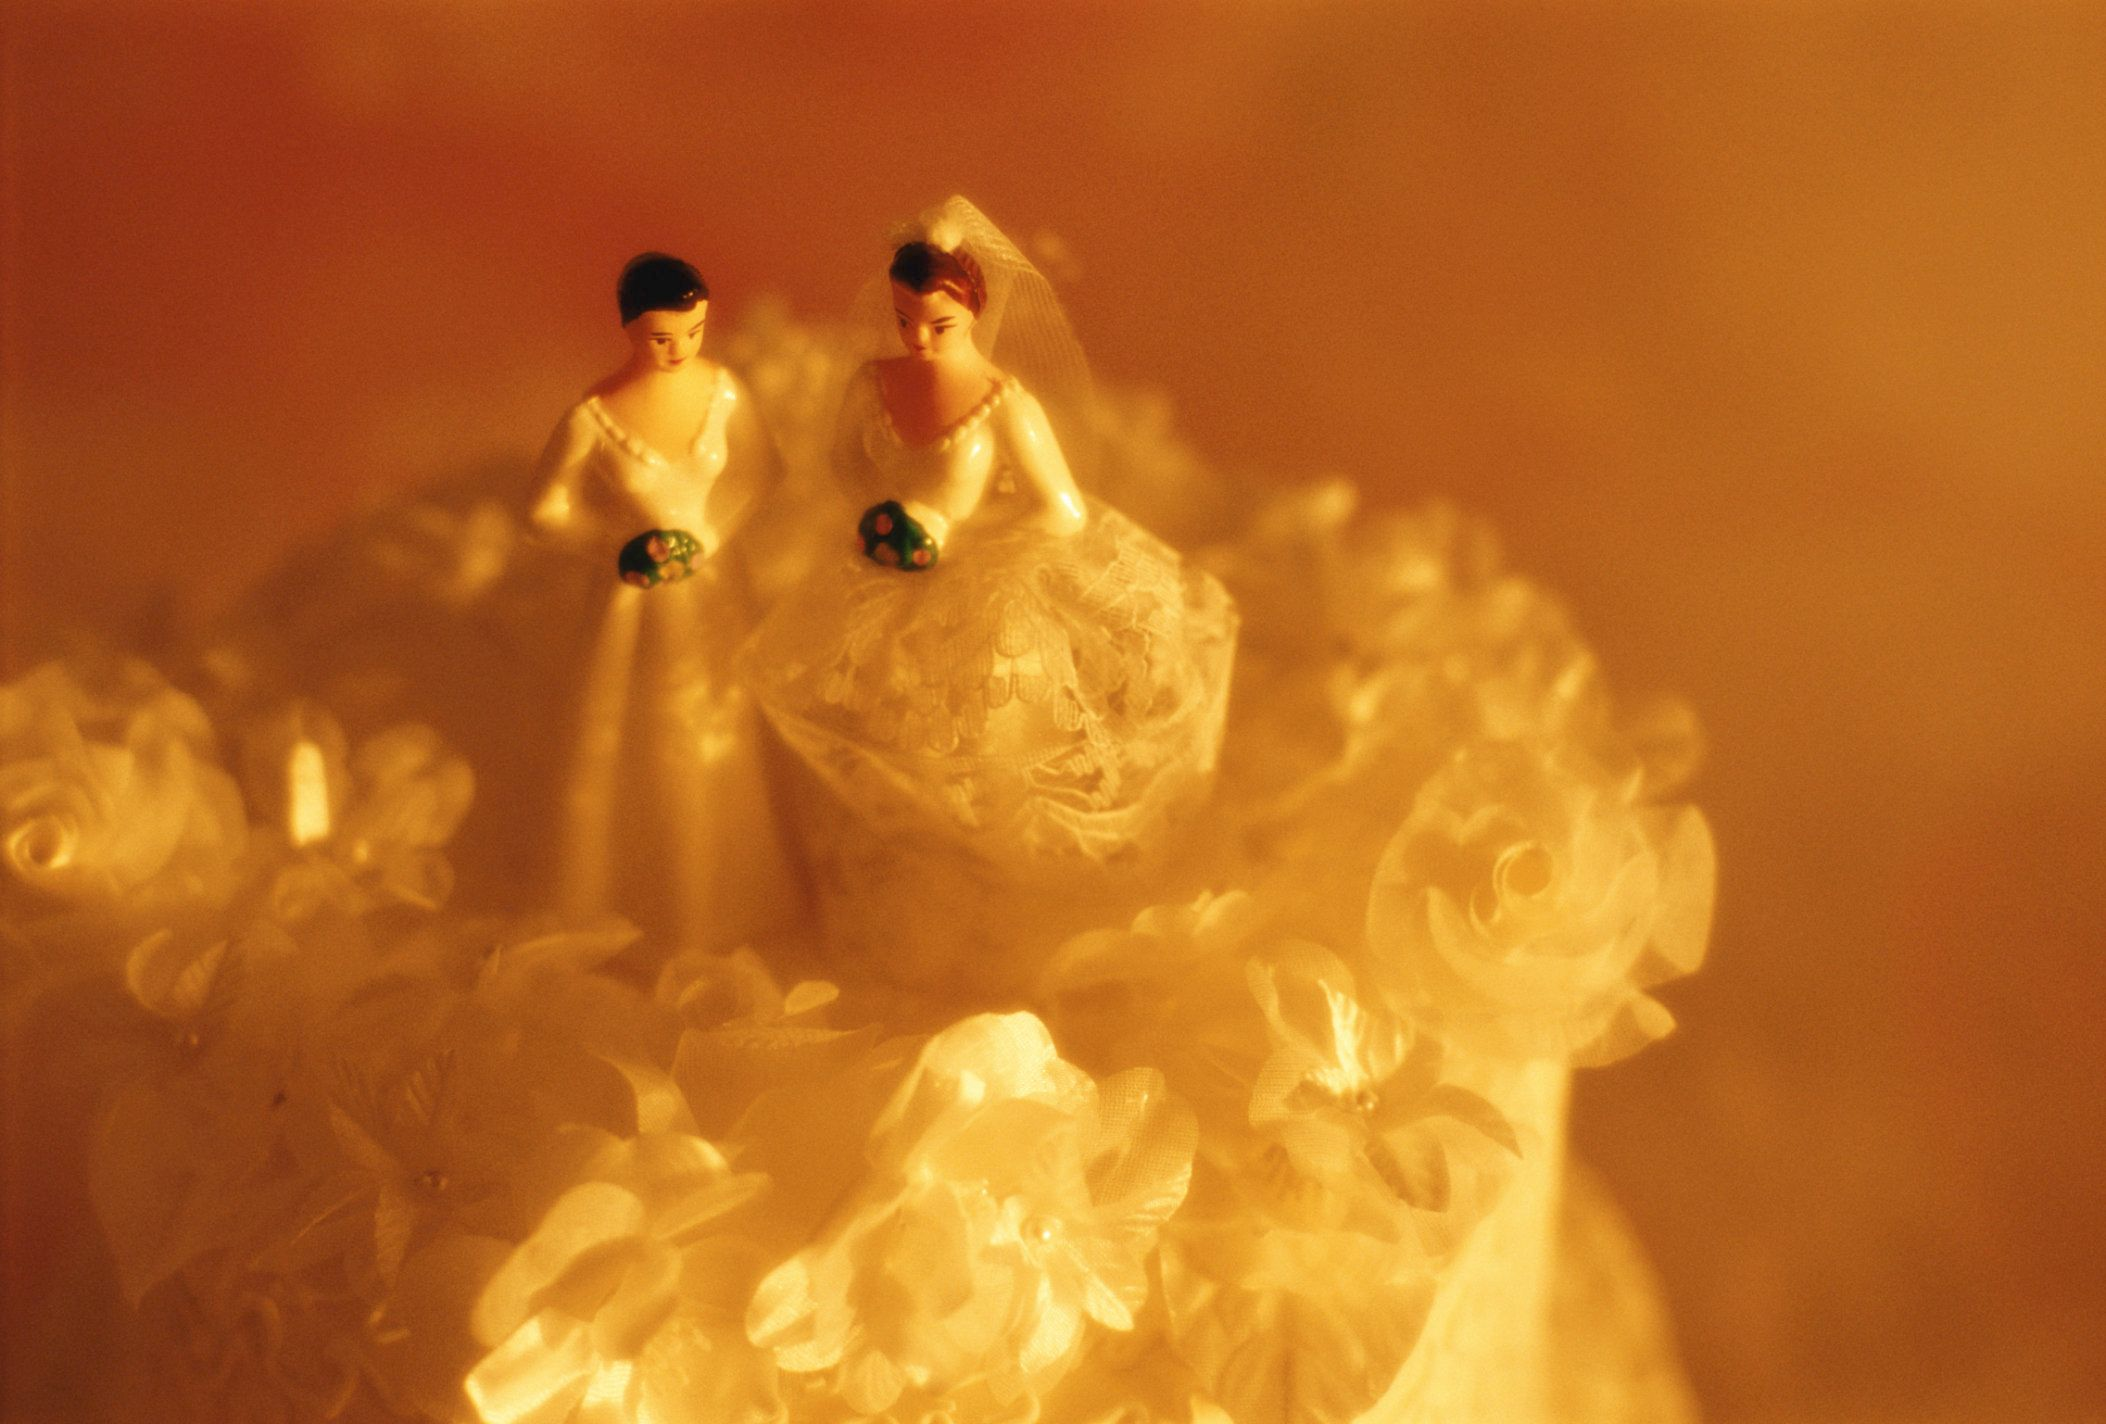 Two bride figurines atop wedding cake, elevated view